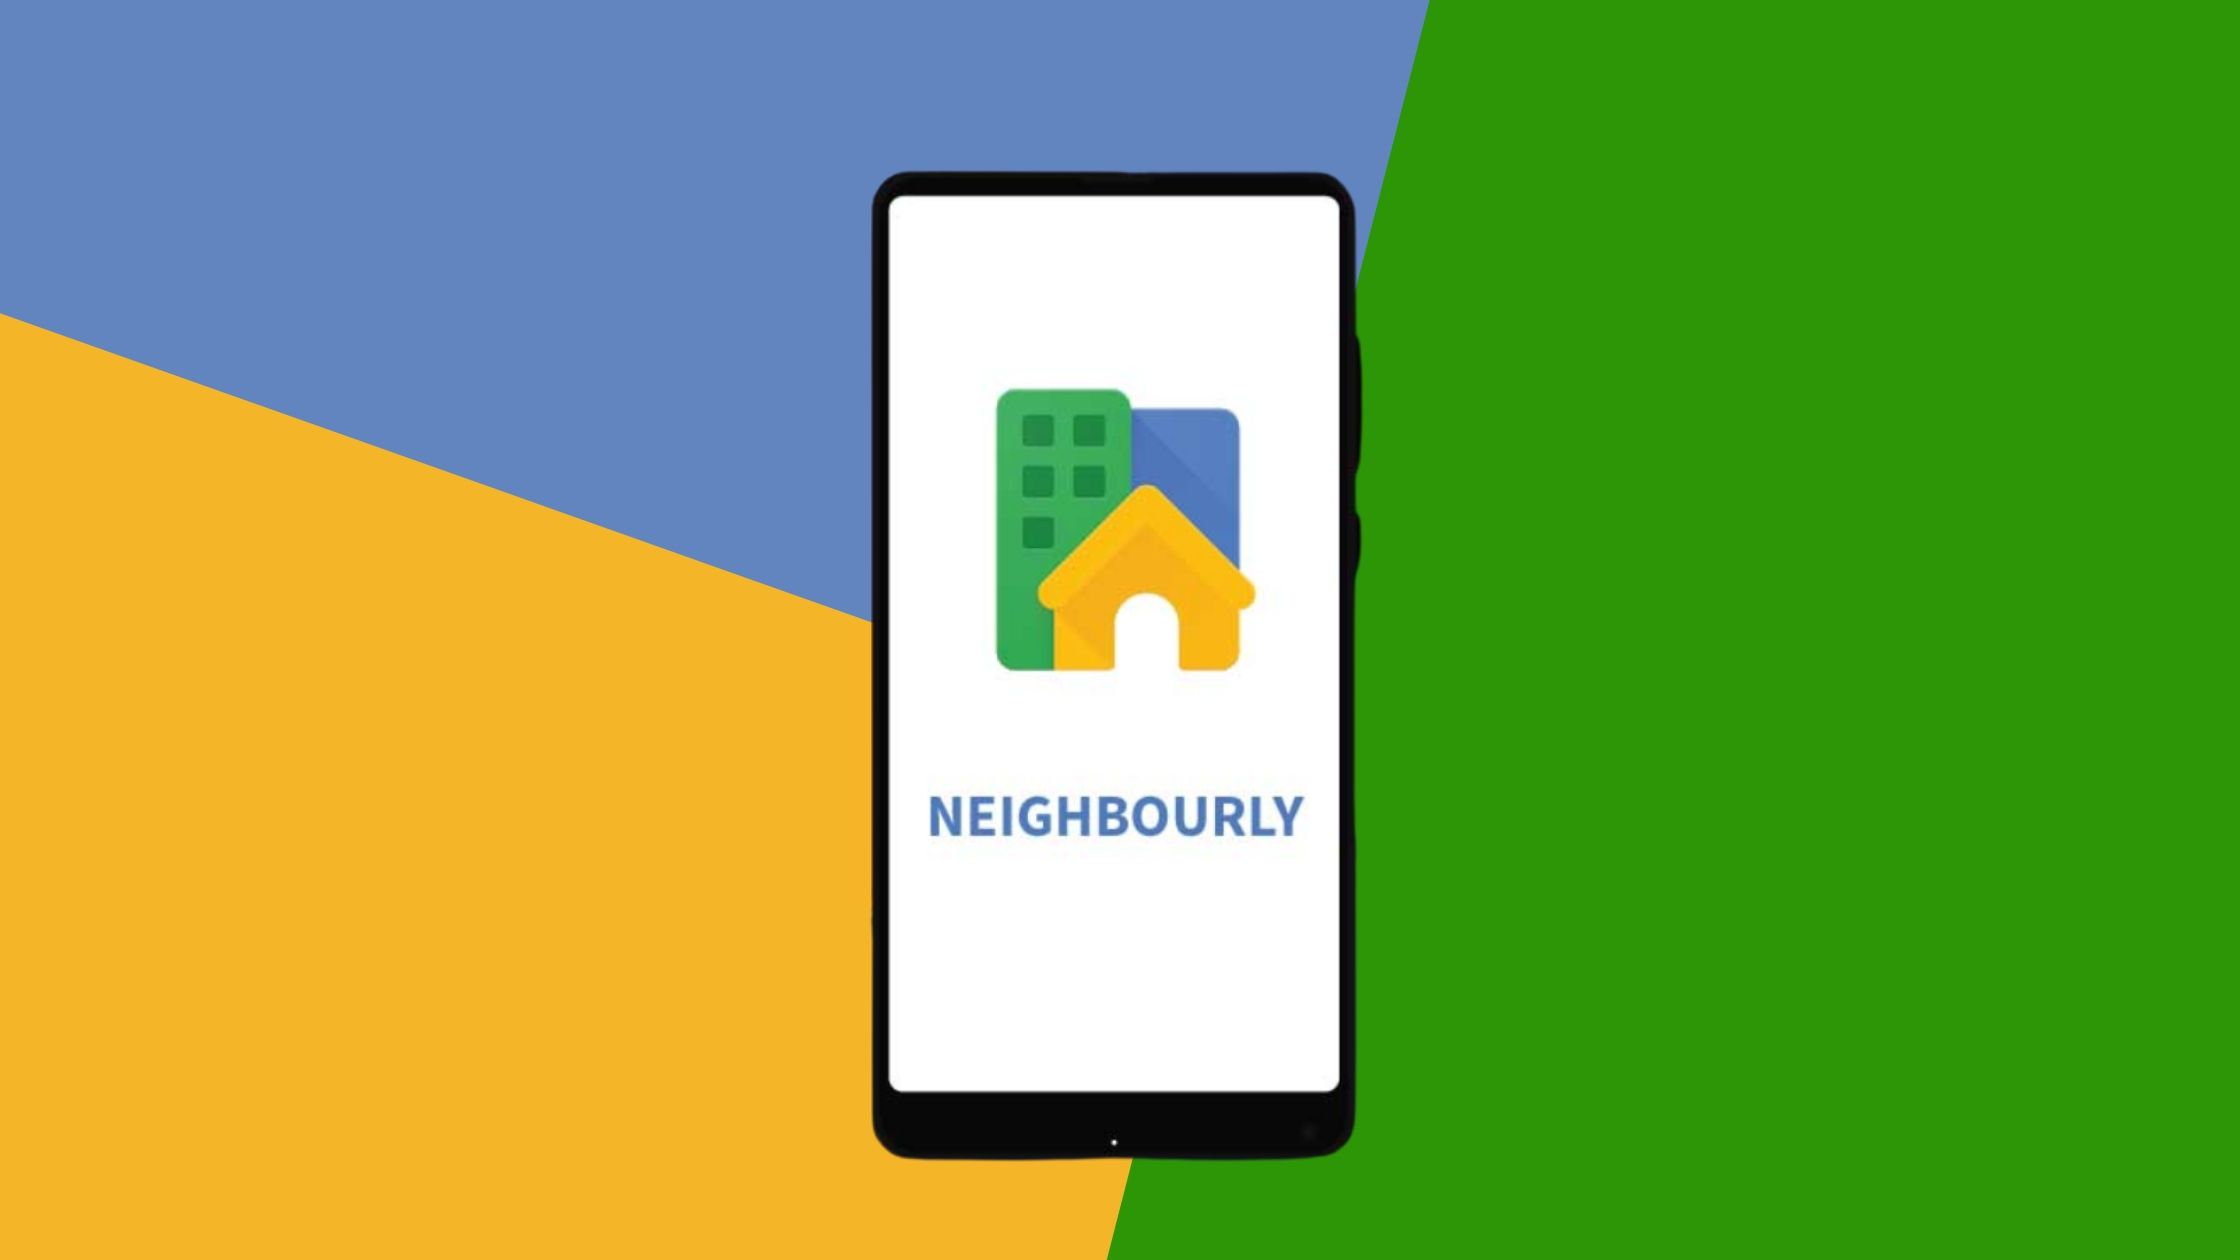 Google is shutting down its Neighbourly app